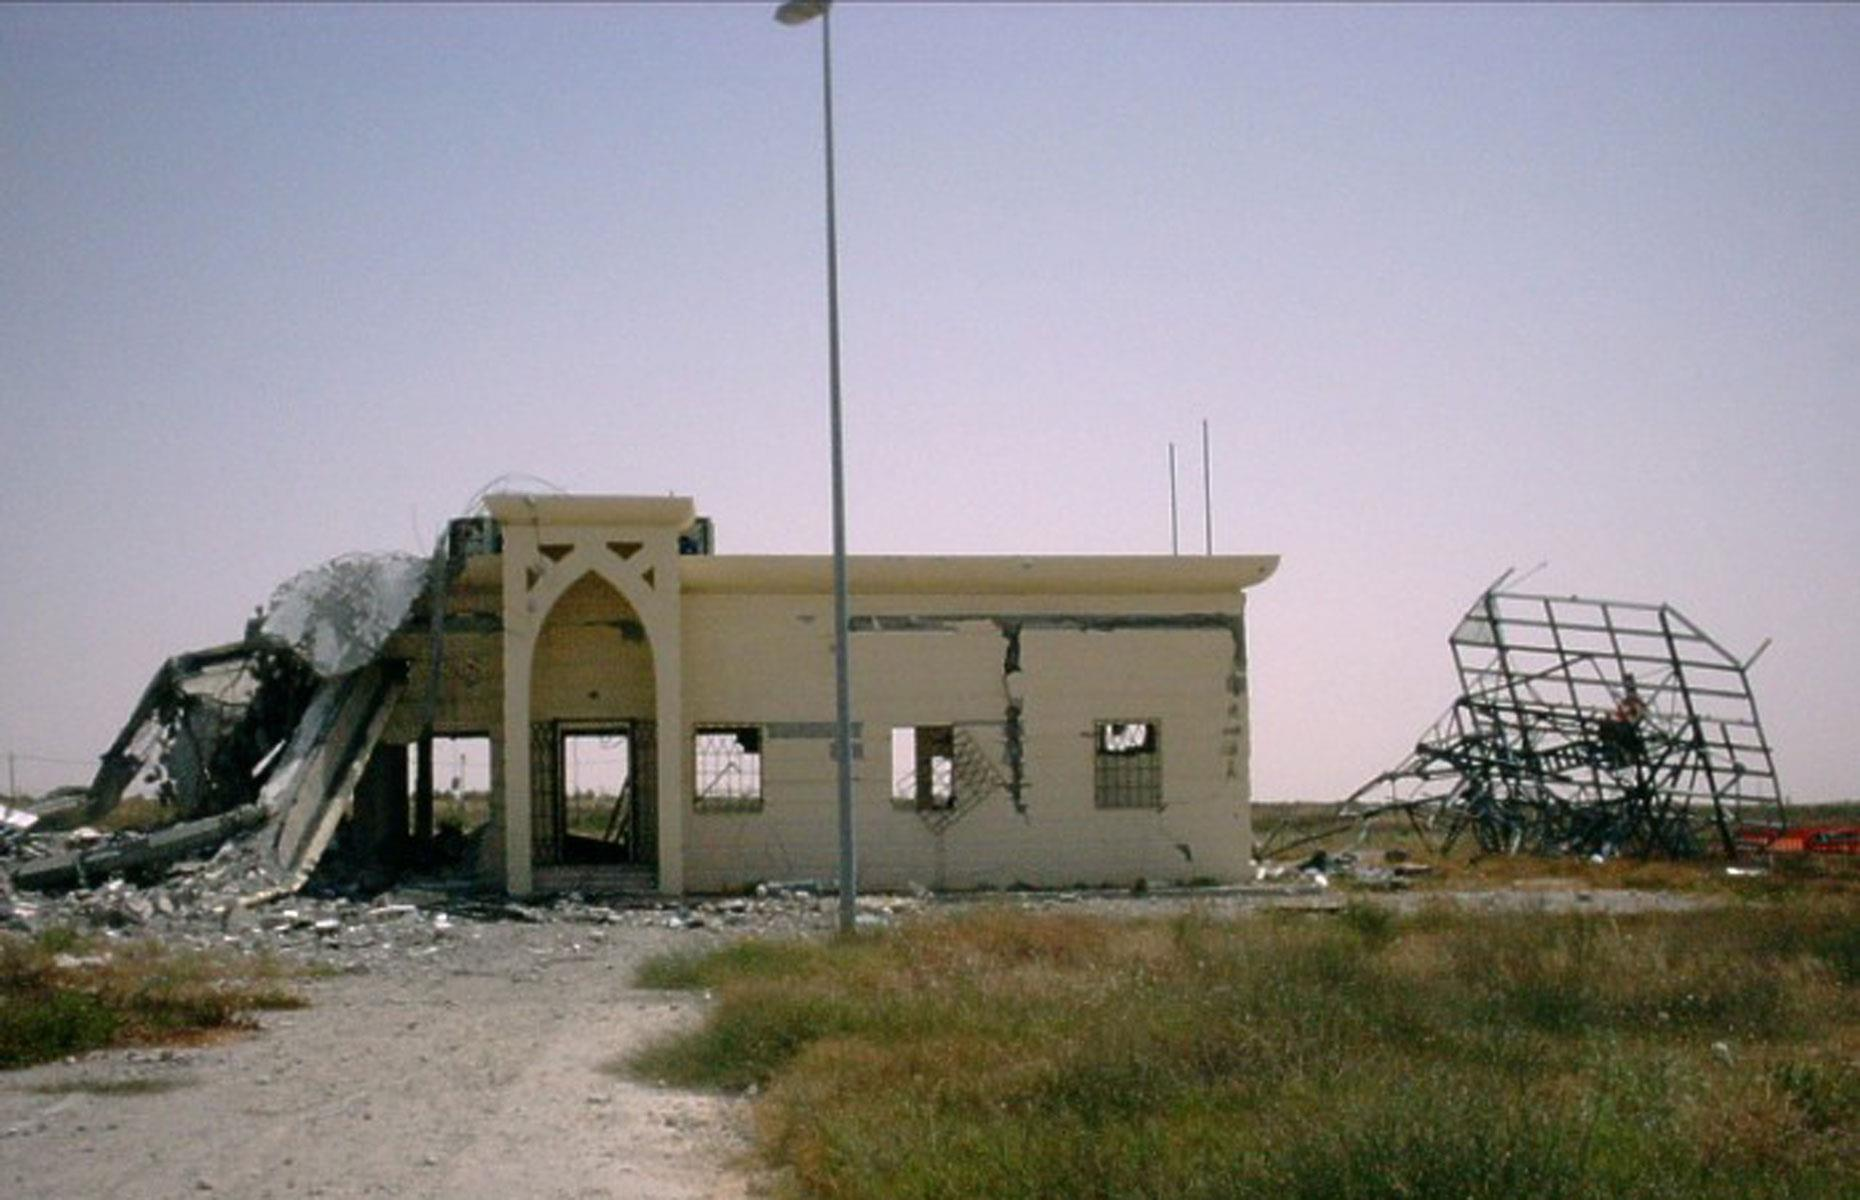 Slide 70 of 70: Now a complete wreck, the airport has been totally abandoned and proposals to rebuild the hub have been vetoed by the Israeli authorities. Discover more of the world's creepy abandoned airports here